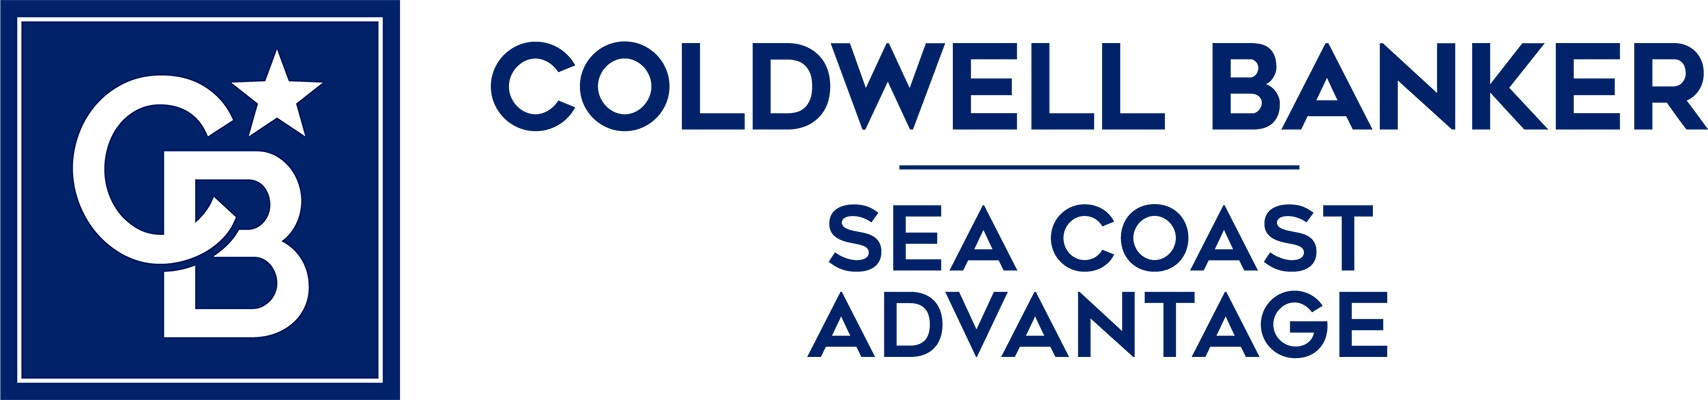 Katie Long - Coldwell Banker Sea Coast Advantage Realty Logo